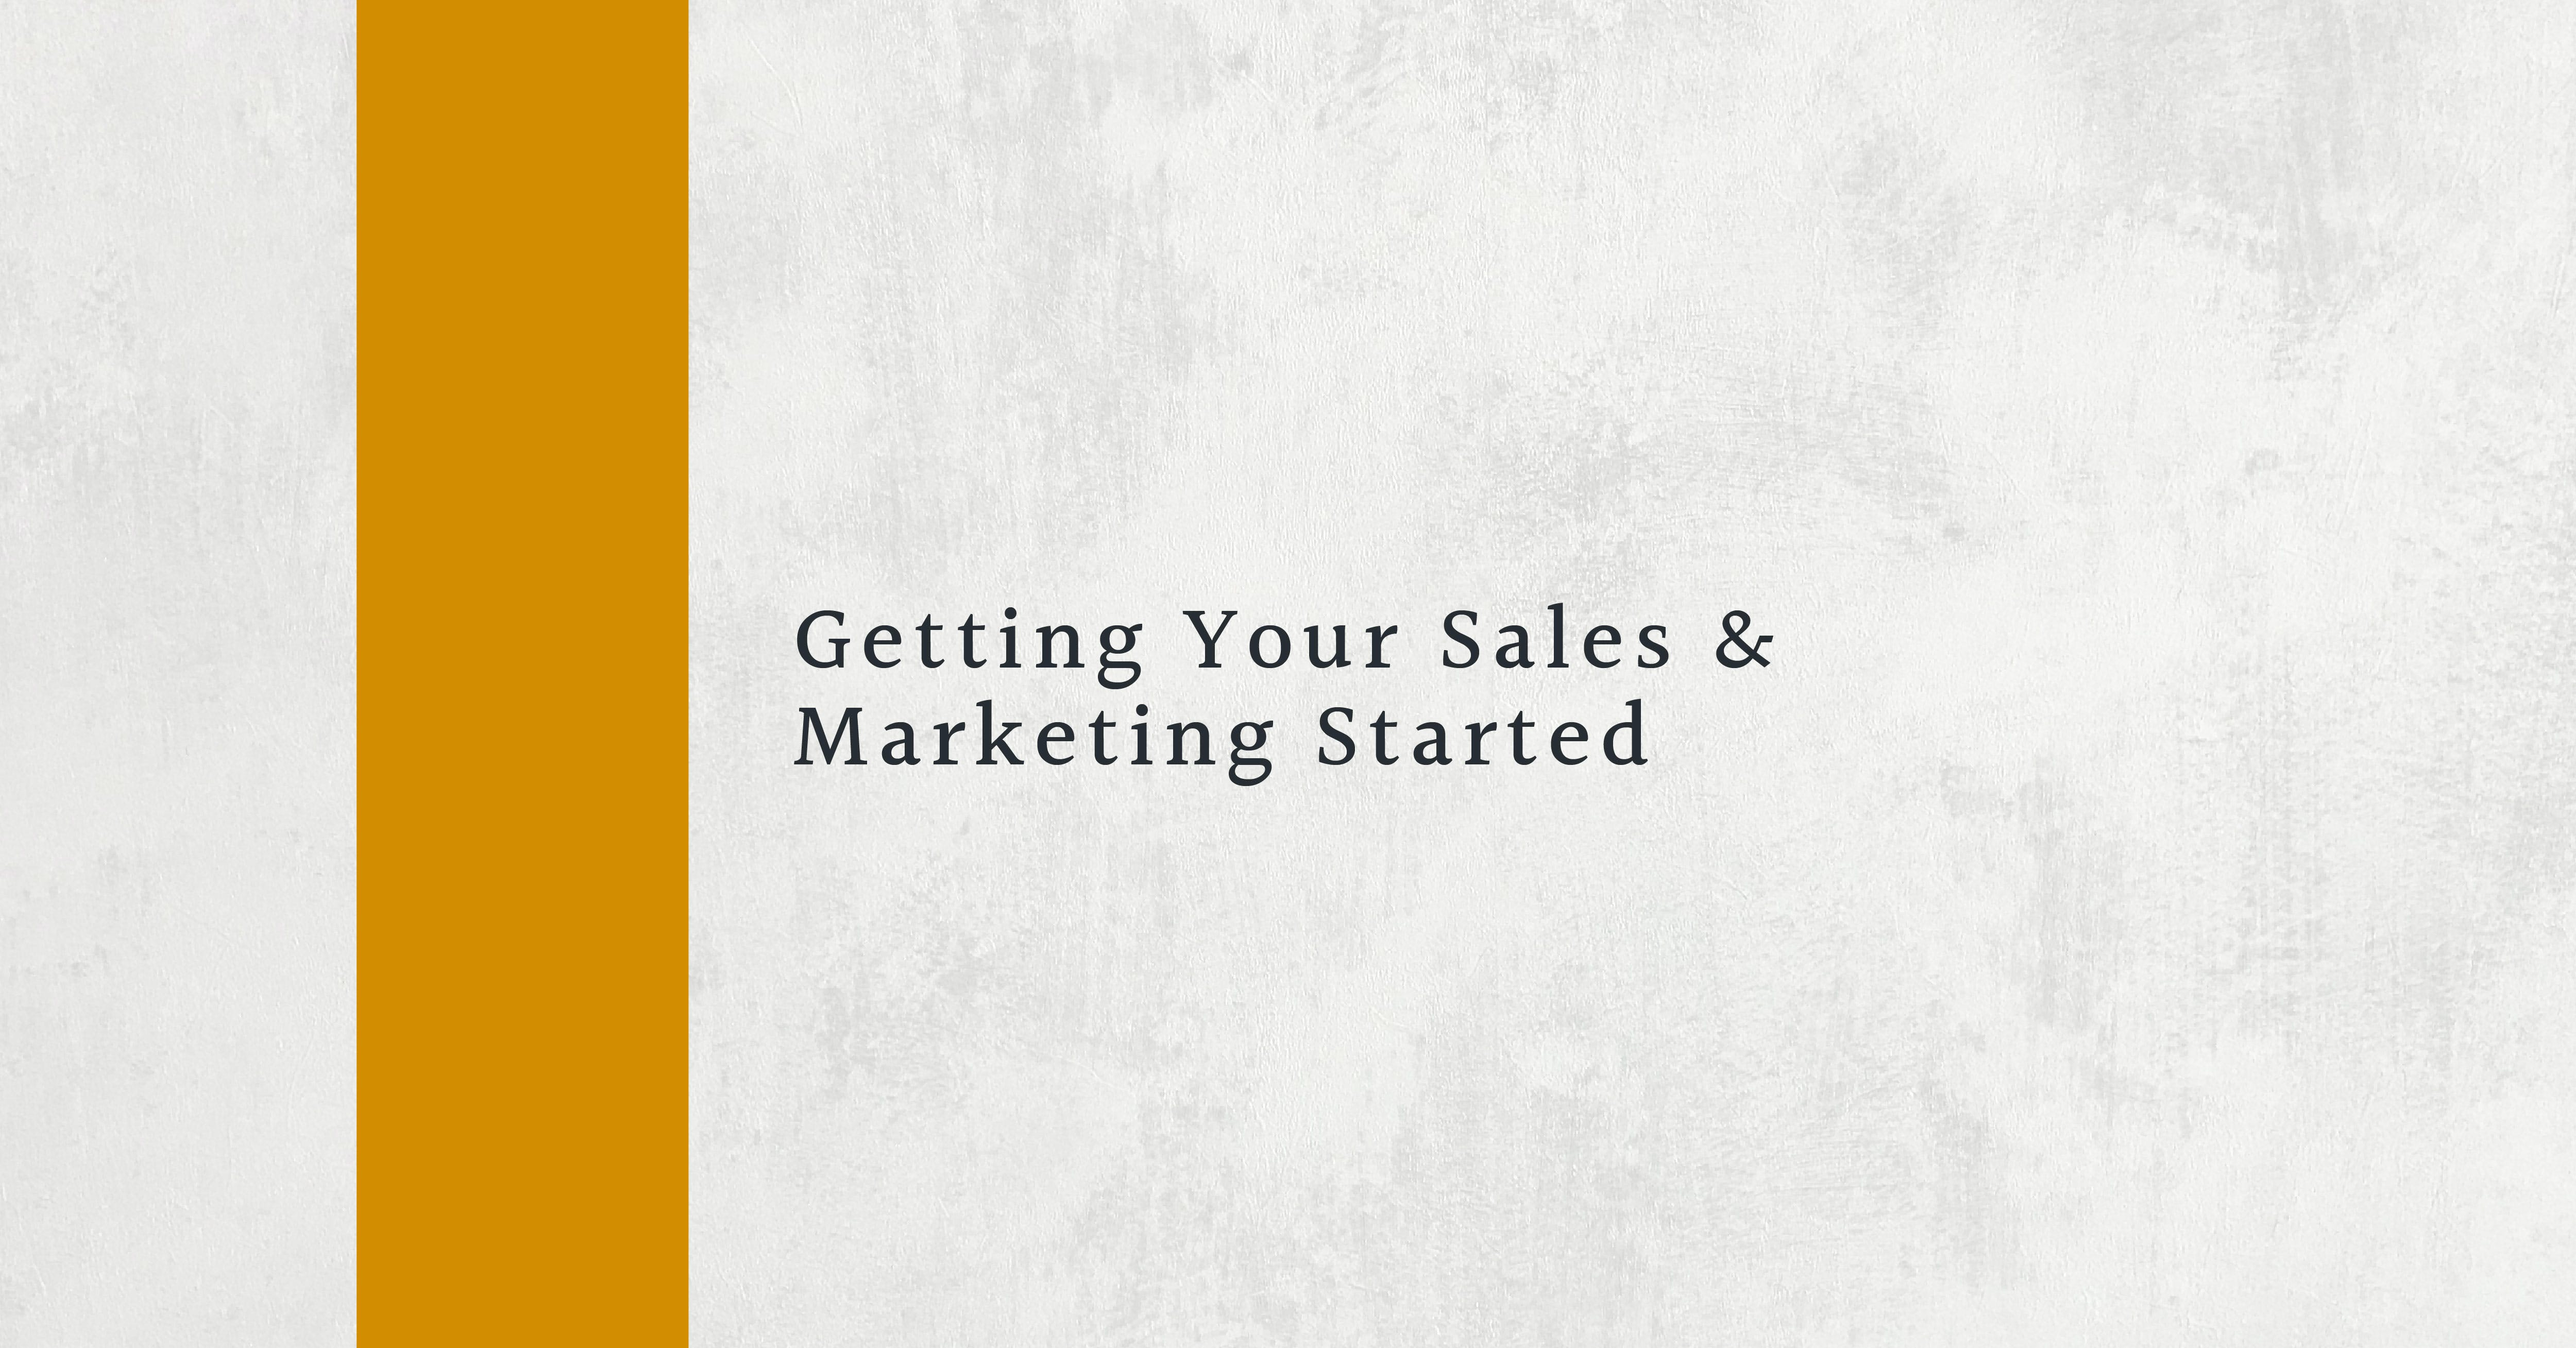 Getting Your Sales and Marketing Started image